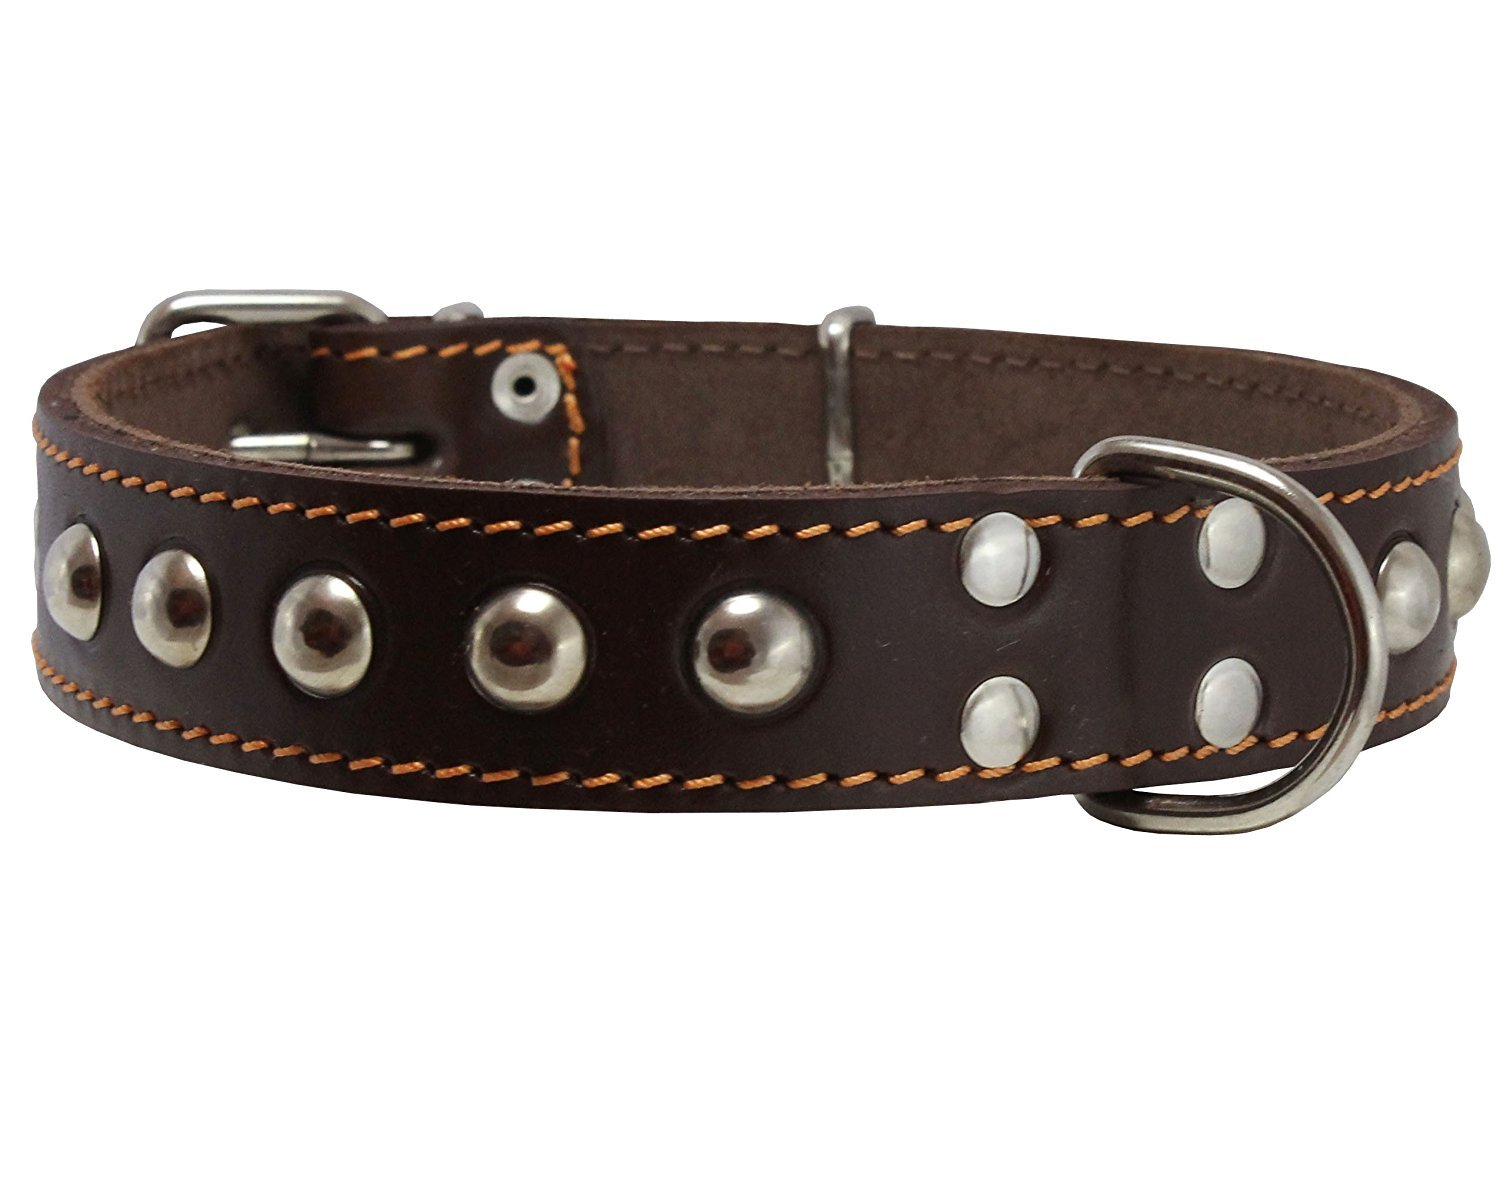 Genuine 1  Wide Thick Leather Studded Dog Collar. Fits 14 -17  Neck, Medium Breeds.